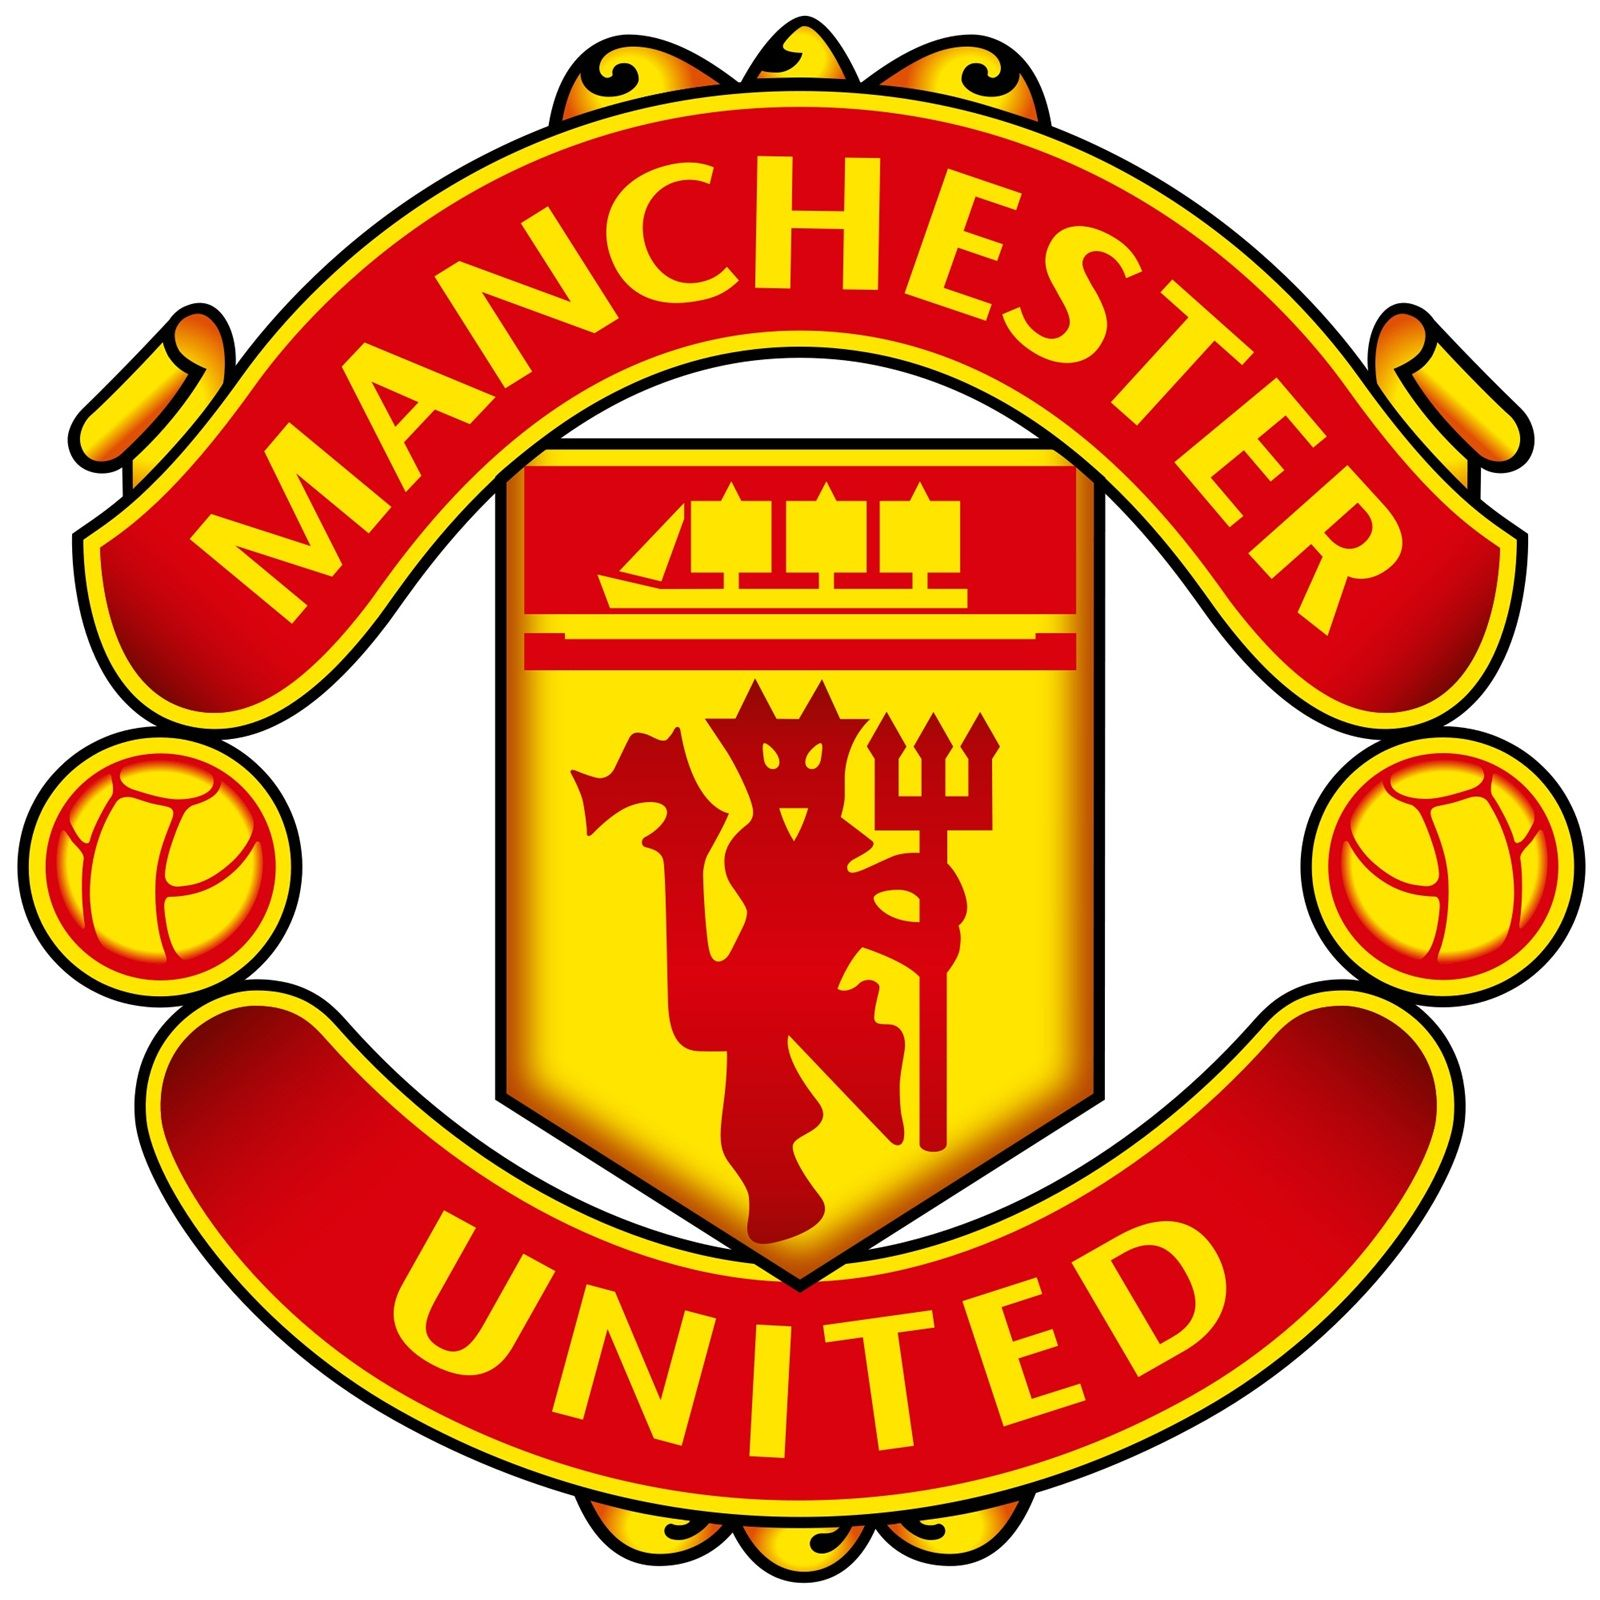 manchester-united-logo | Pinterest | Manchester united football